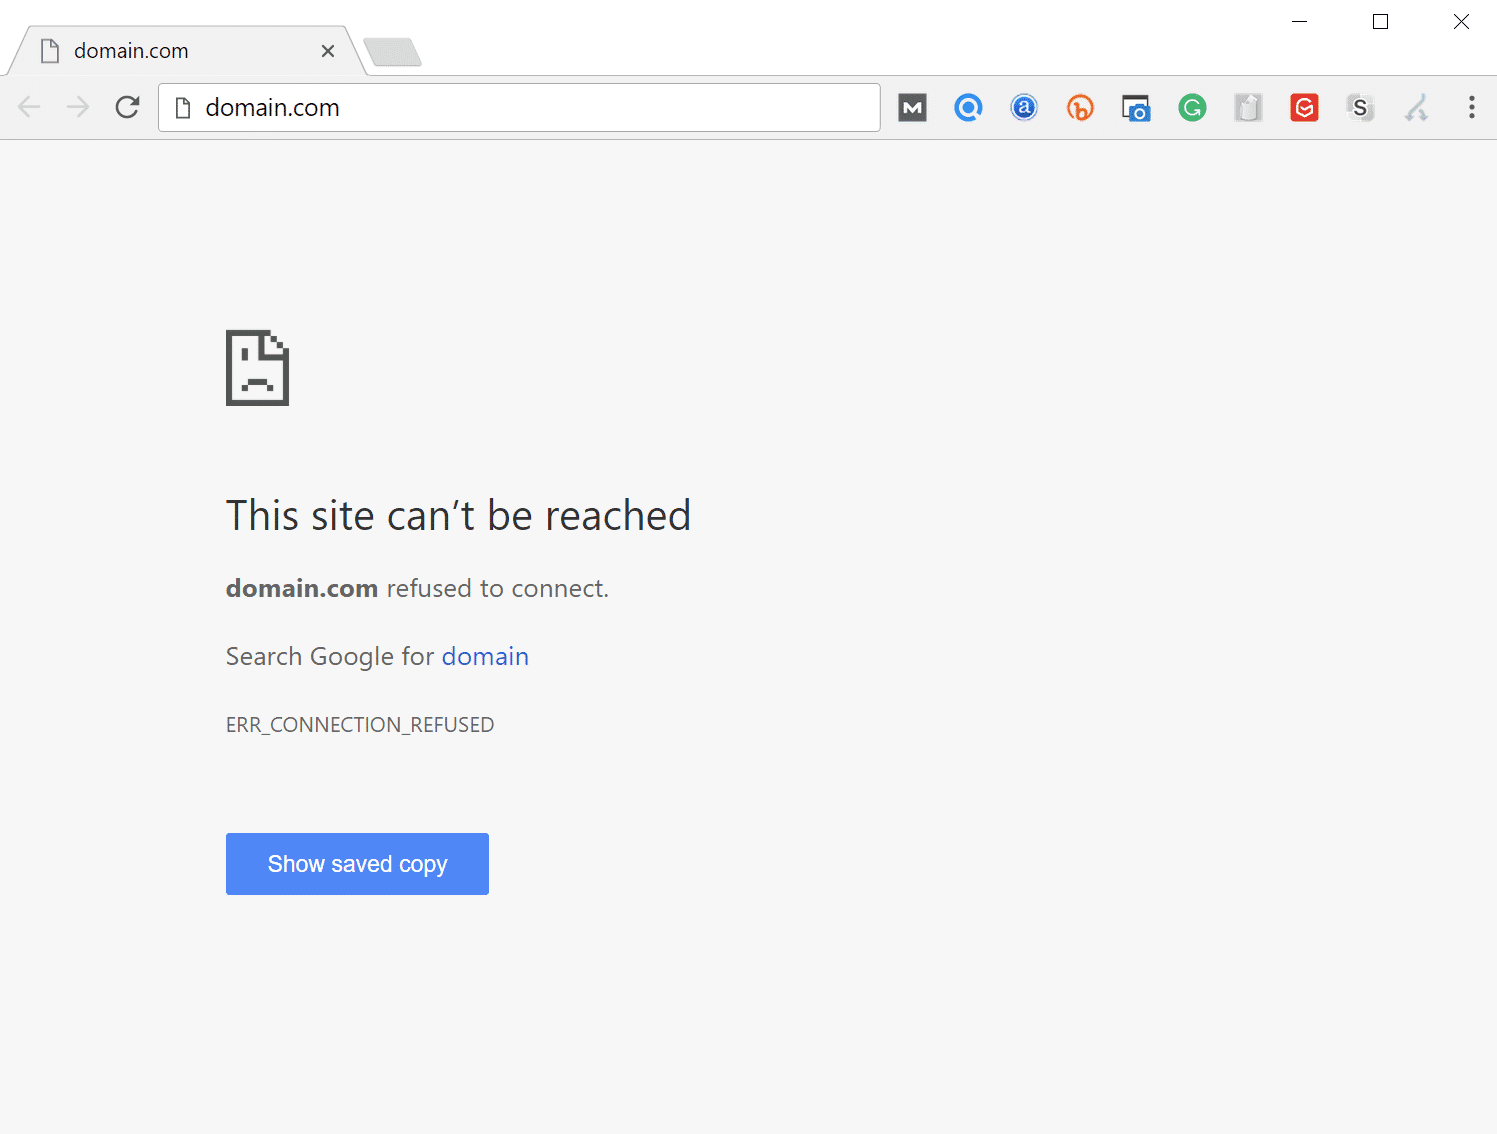 Erro ERR_CONNECTION_REFUSED no Google Chrome